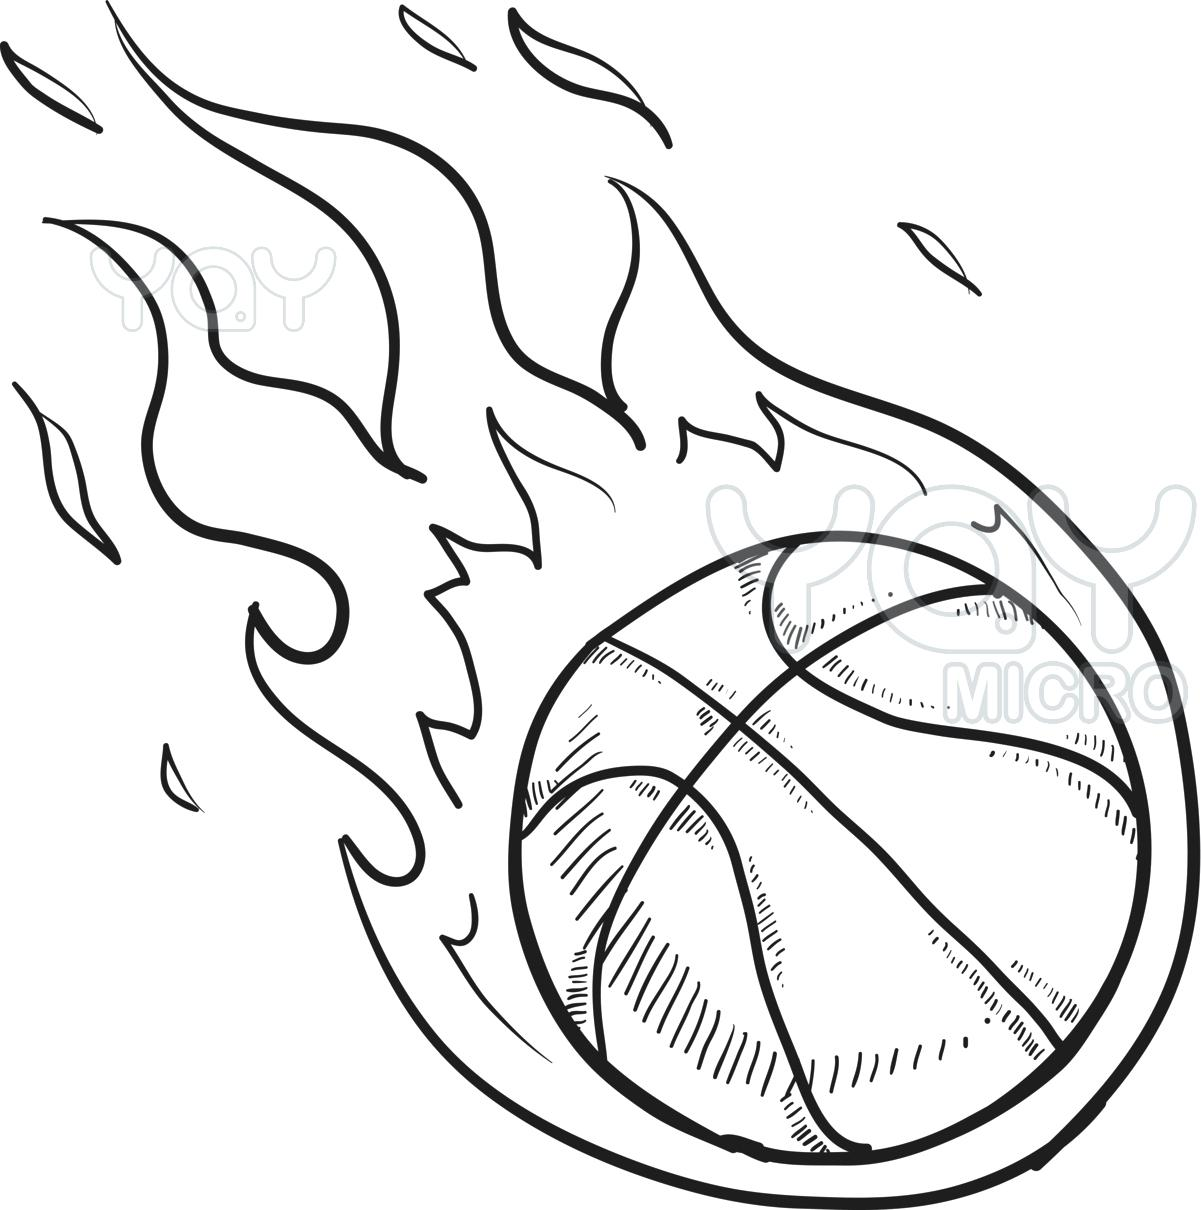 Heart With Flames Coloring Pages | Free download on ClipArtMag